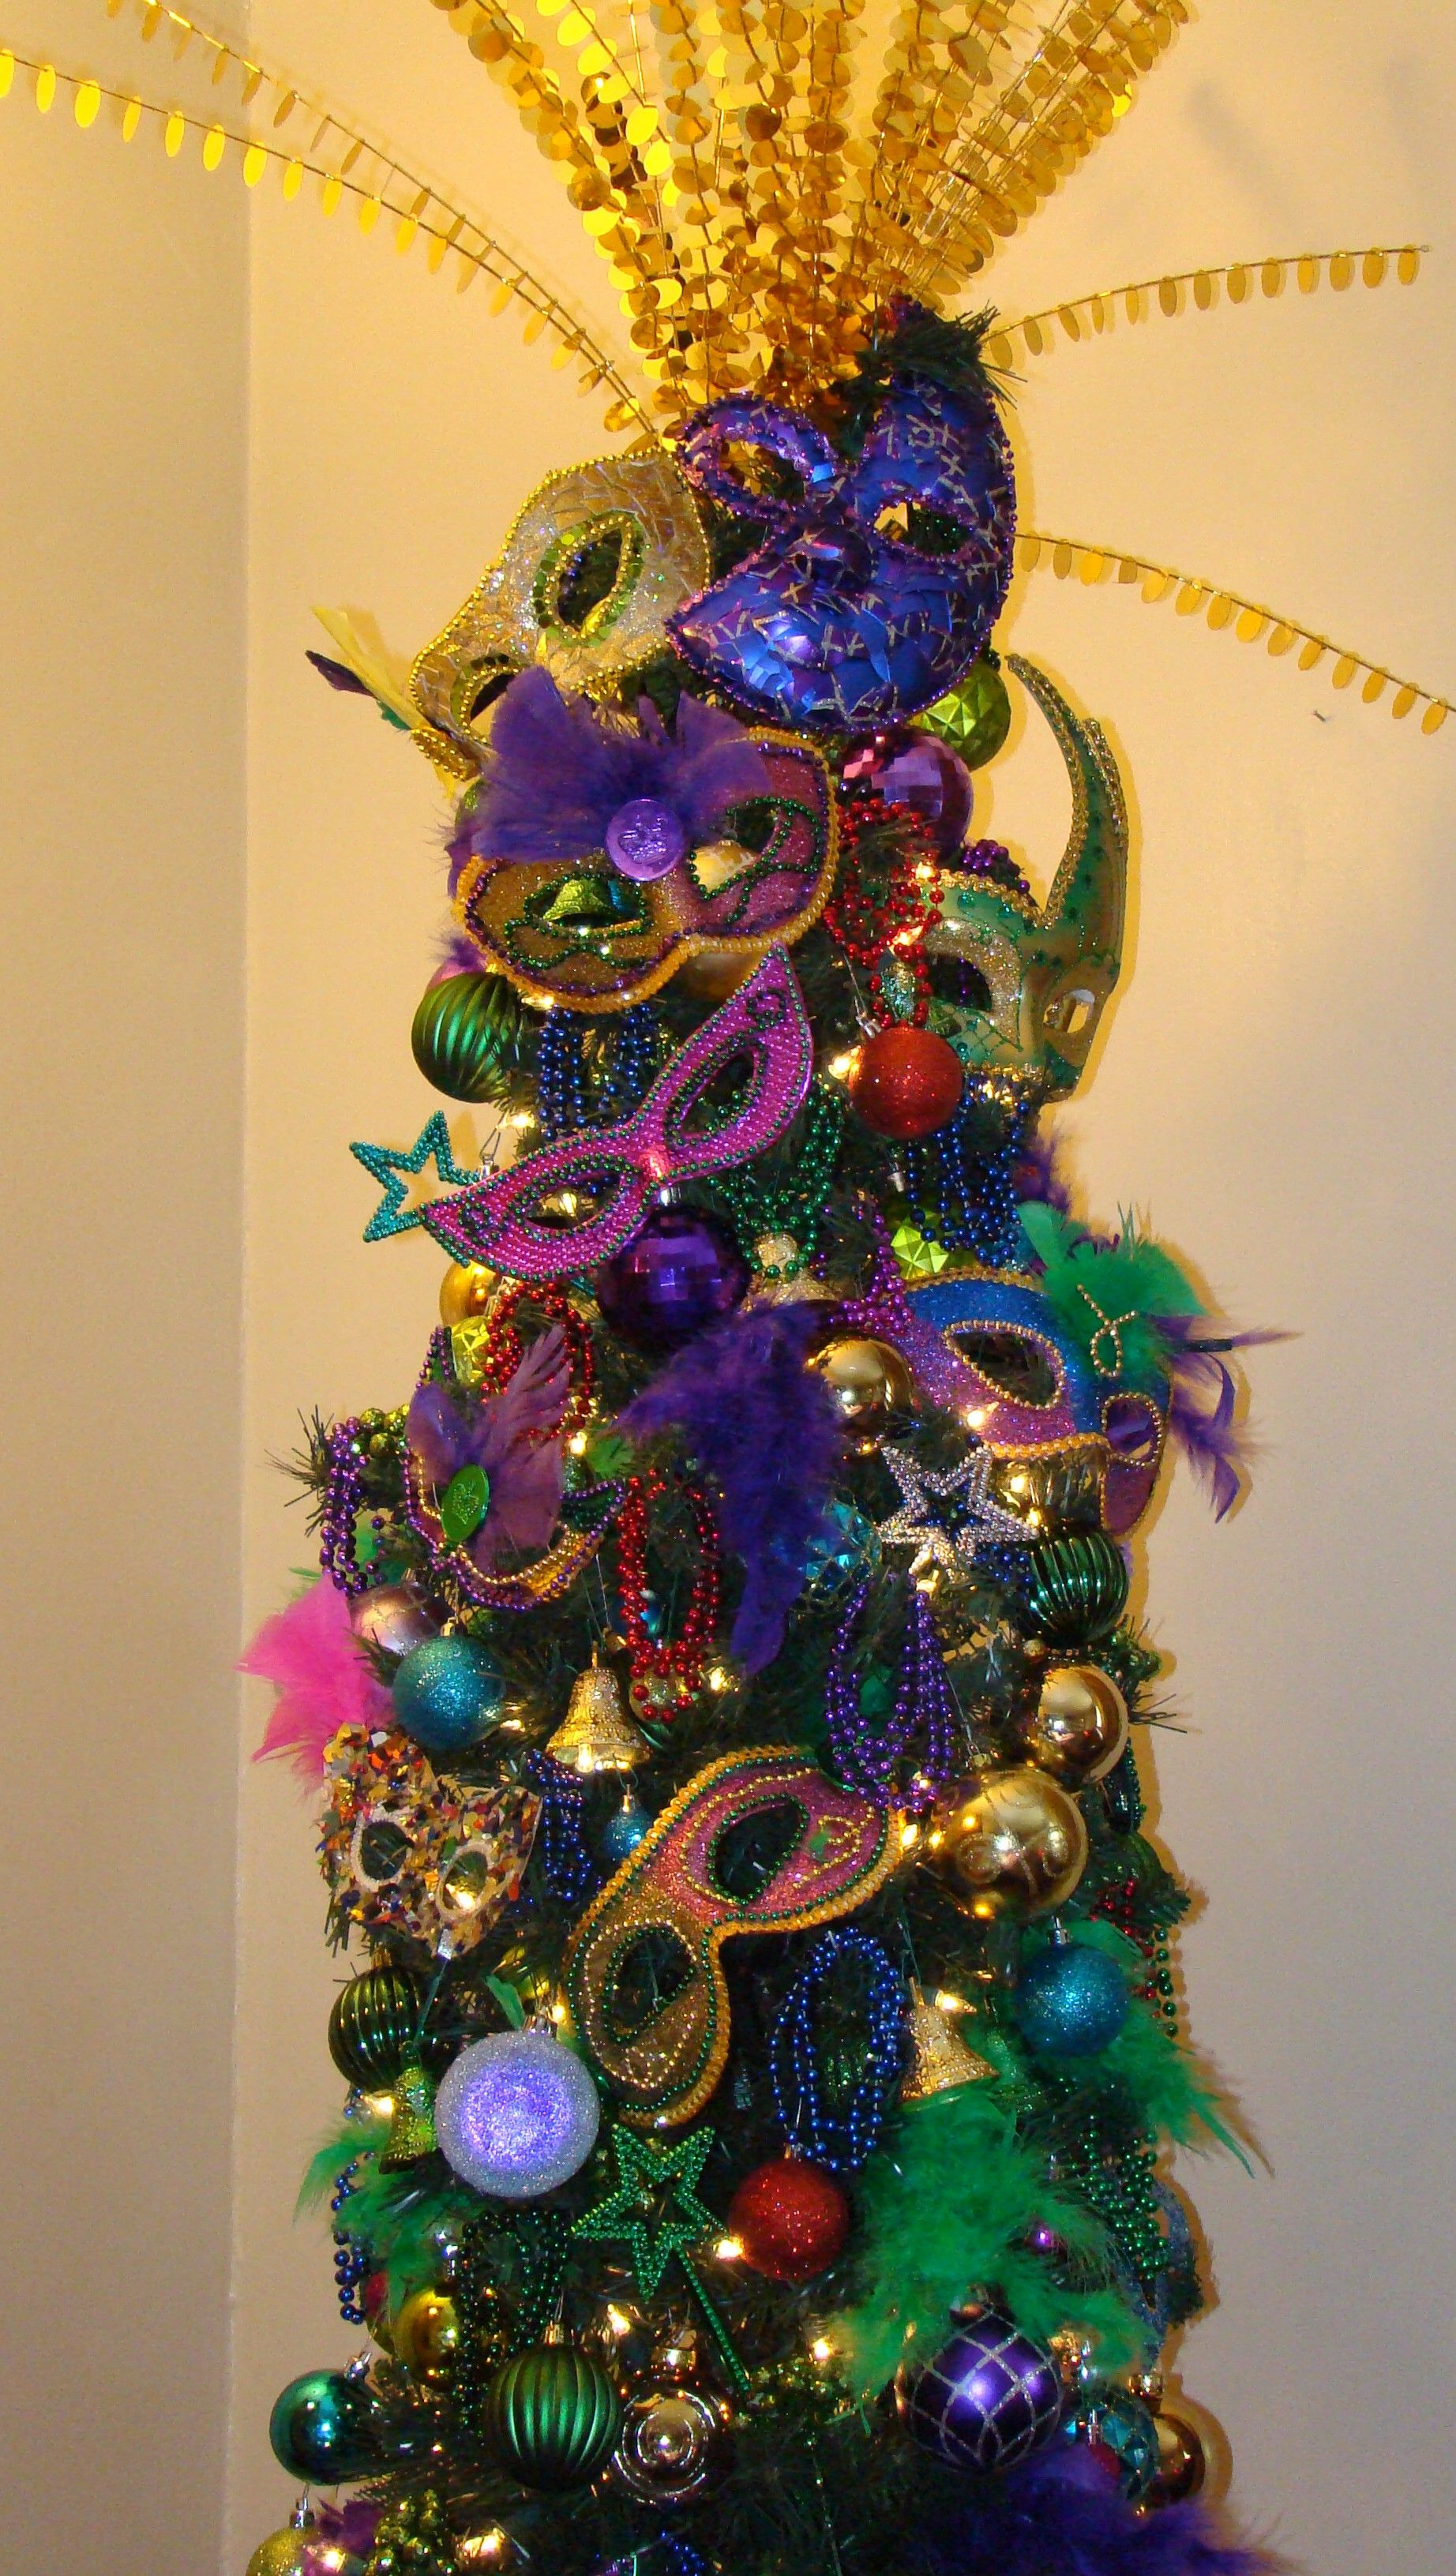 My Christmas Tree Mardi Gra Inspired Made The Masks From Dollar Store Finds Mardi Gras Party Decorations Mardi Gras Crafts Mardi Gras Decorations